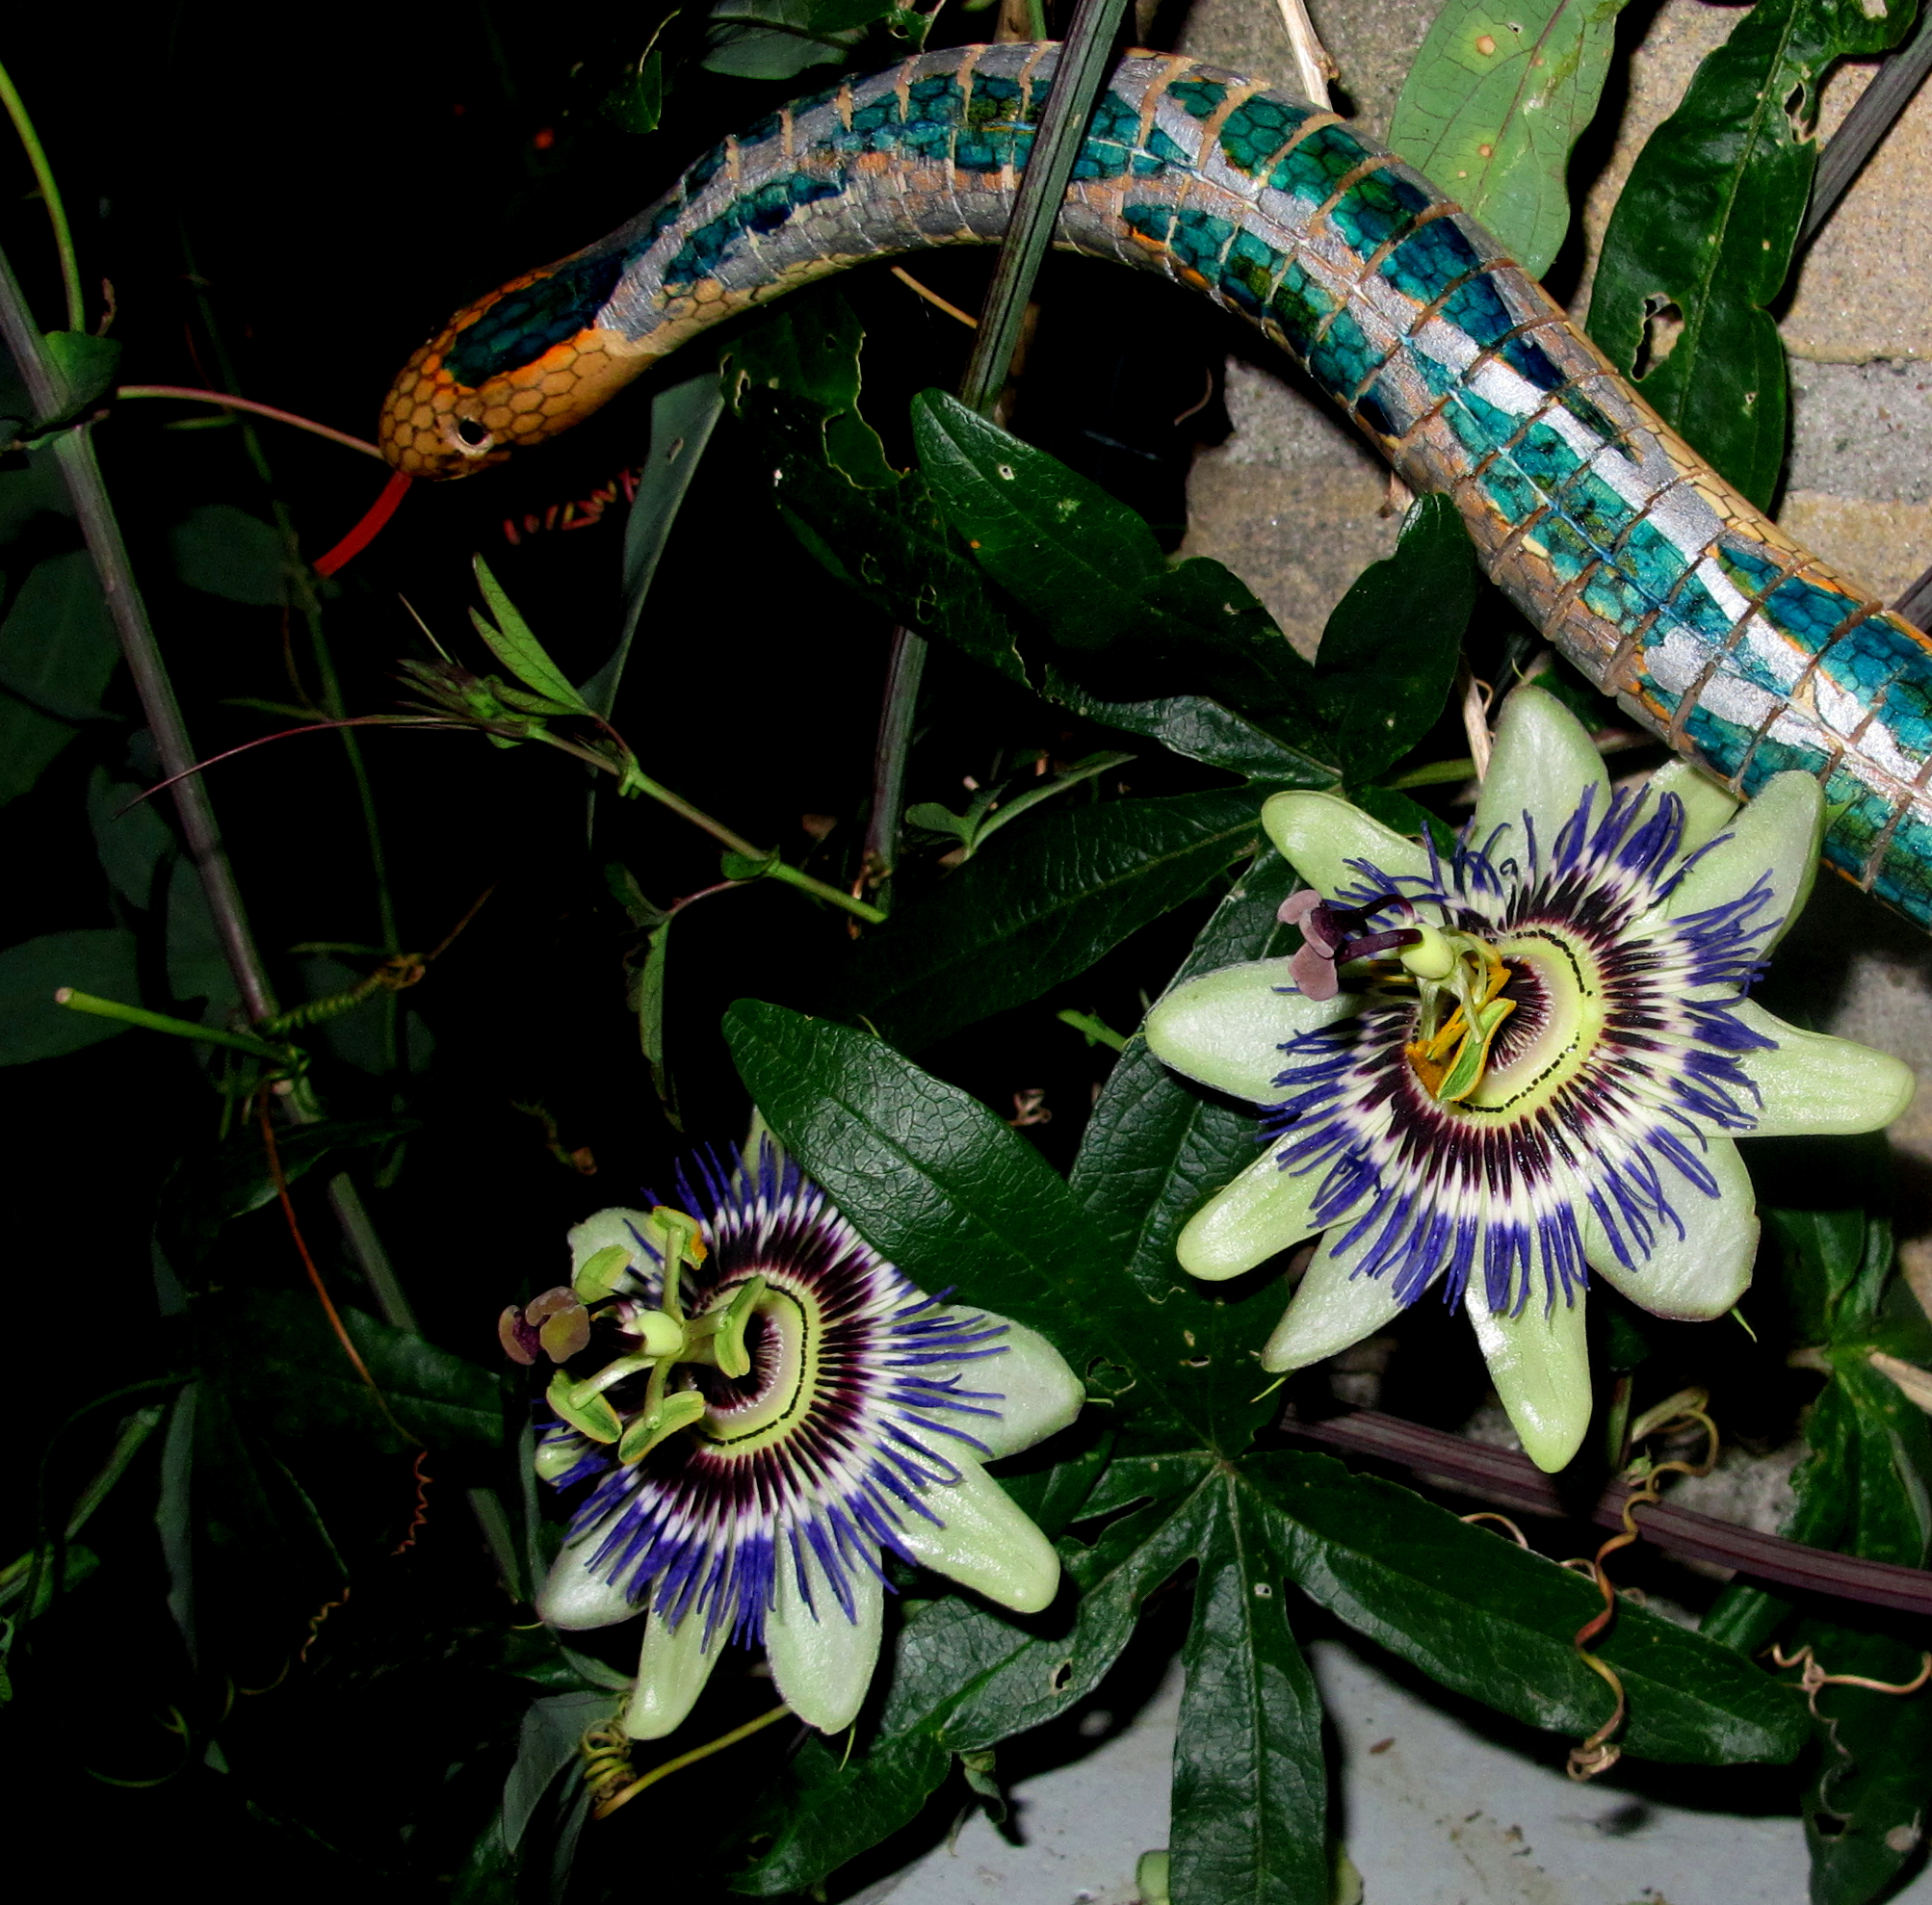 slang en passiebloem serpent passion flower Schlange passionsblume Maria Trepp Gemuteerde passiebloem en passiebloem met slang